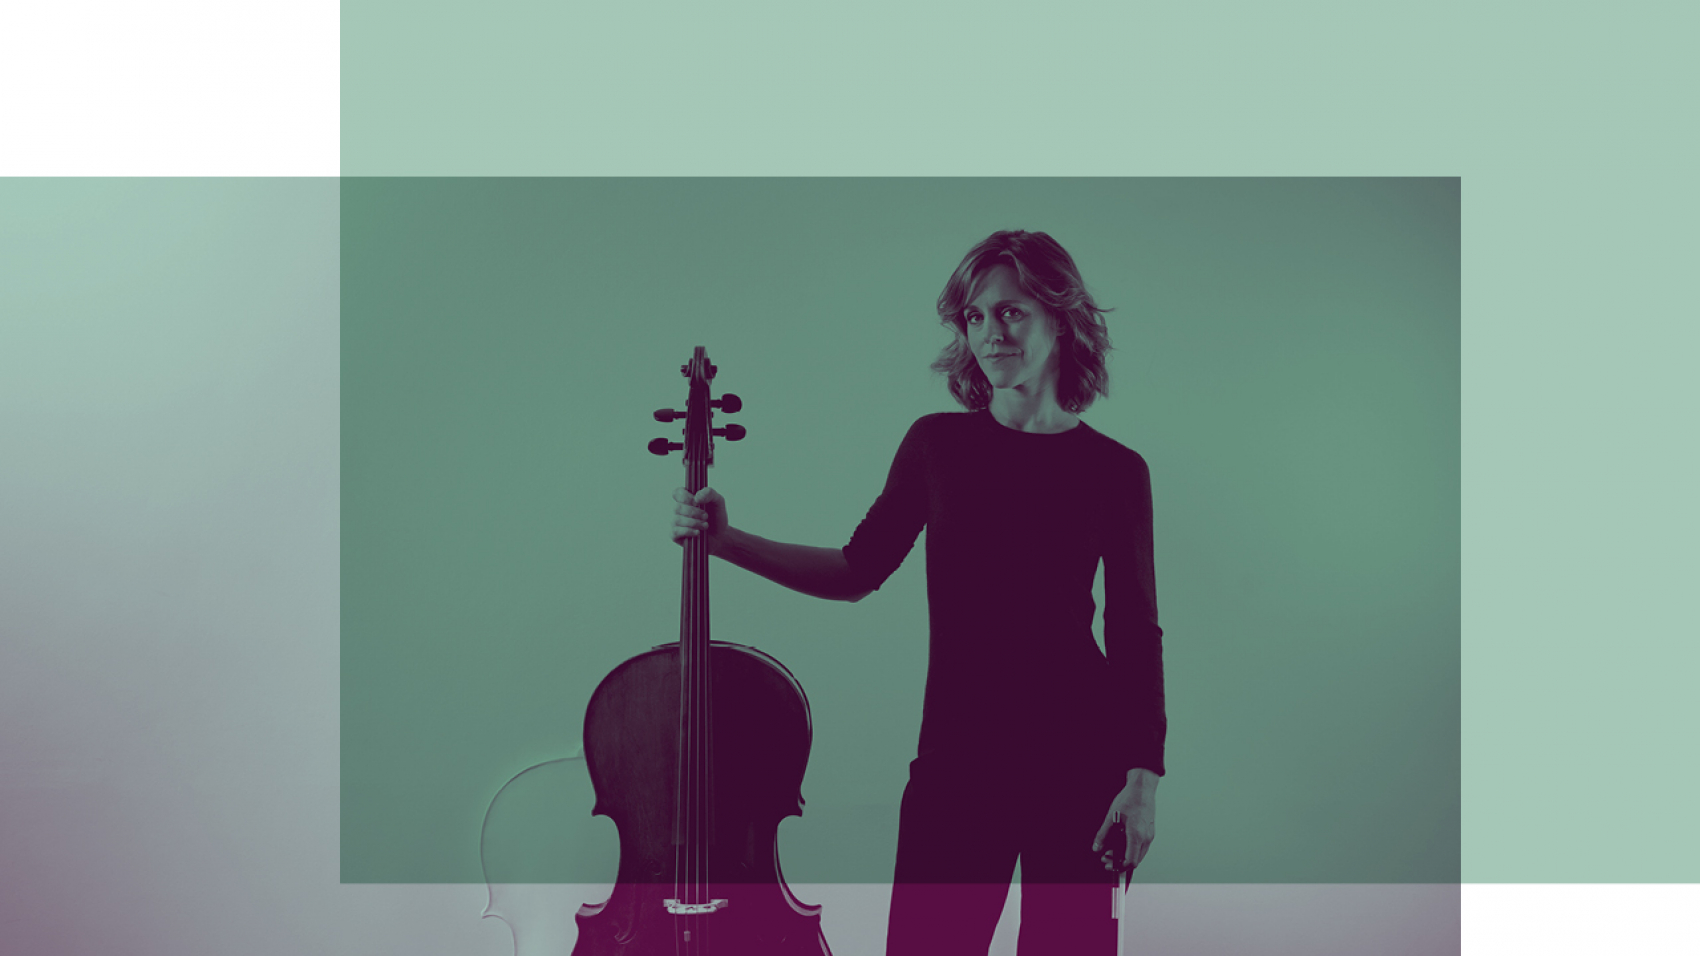 Sol Gabetta plays Martinů's Cello Concert No. 1